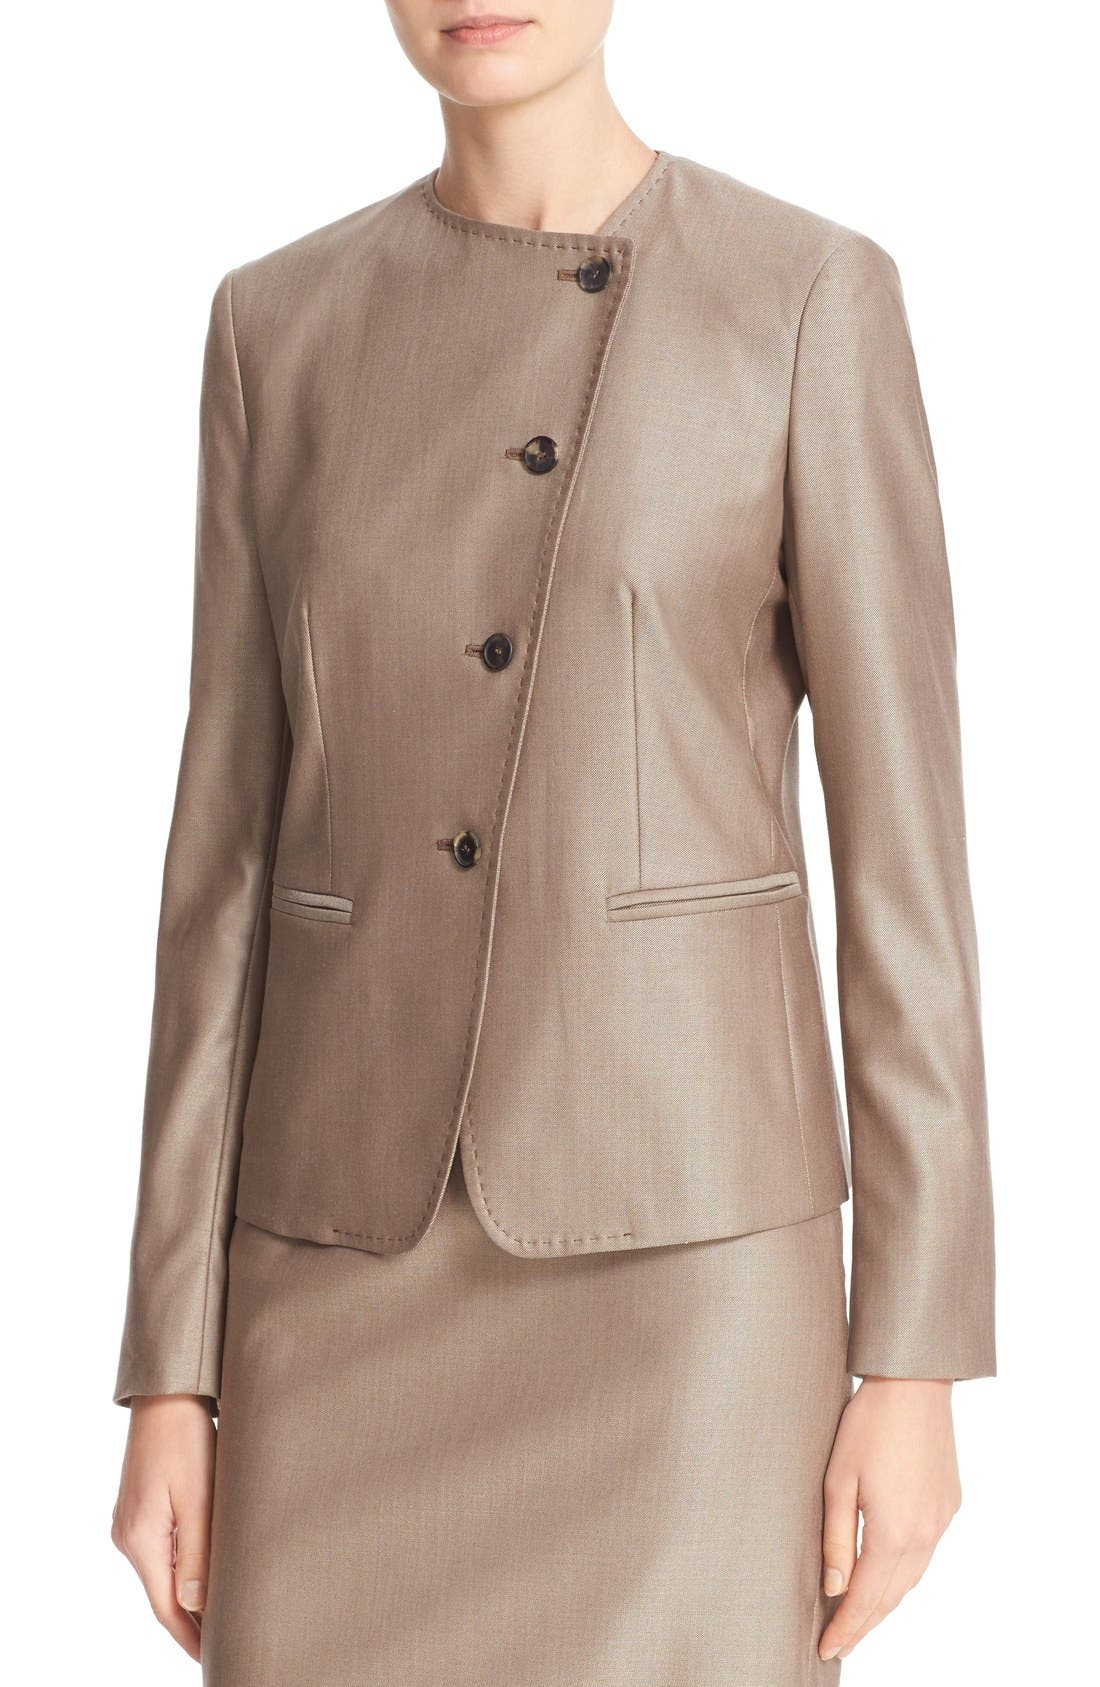 Erba Asymmetrical Jacket,                             Alternate thumbnail 6, color,                             Copper